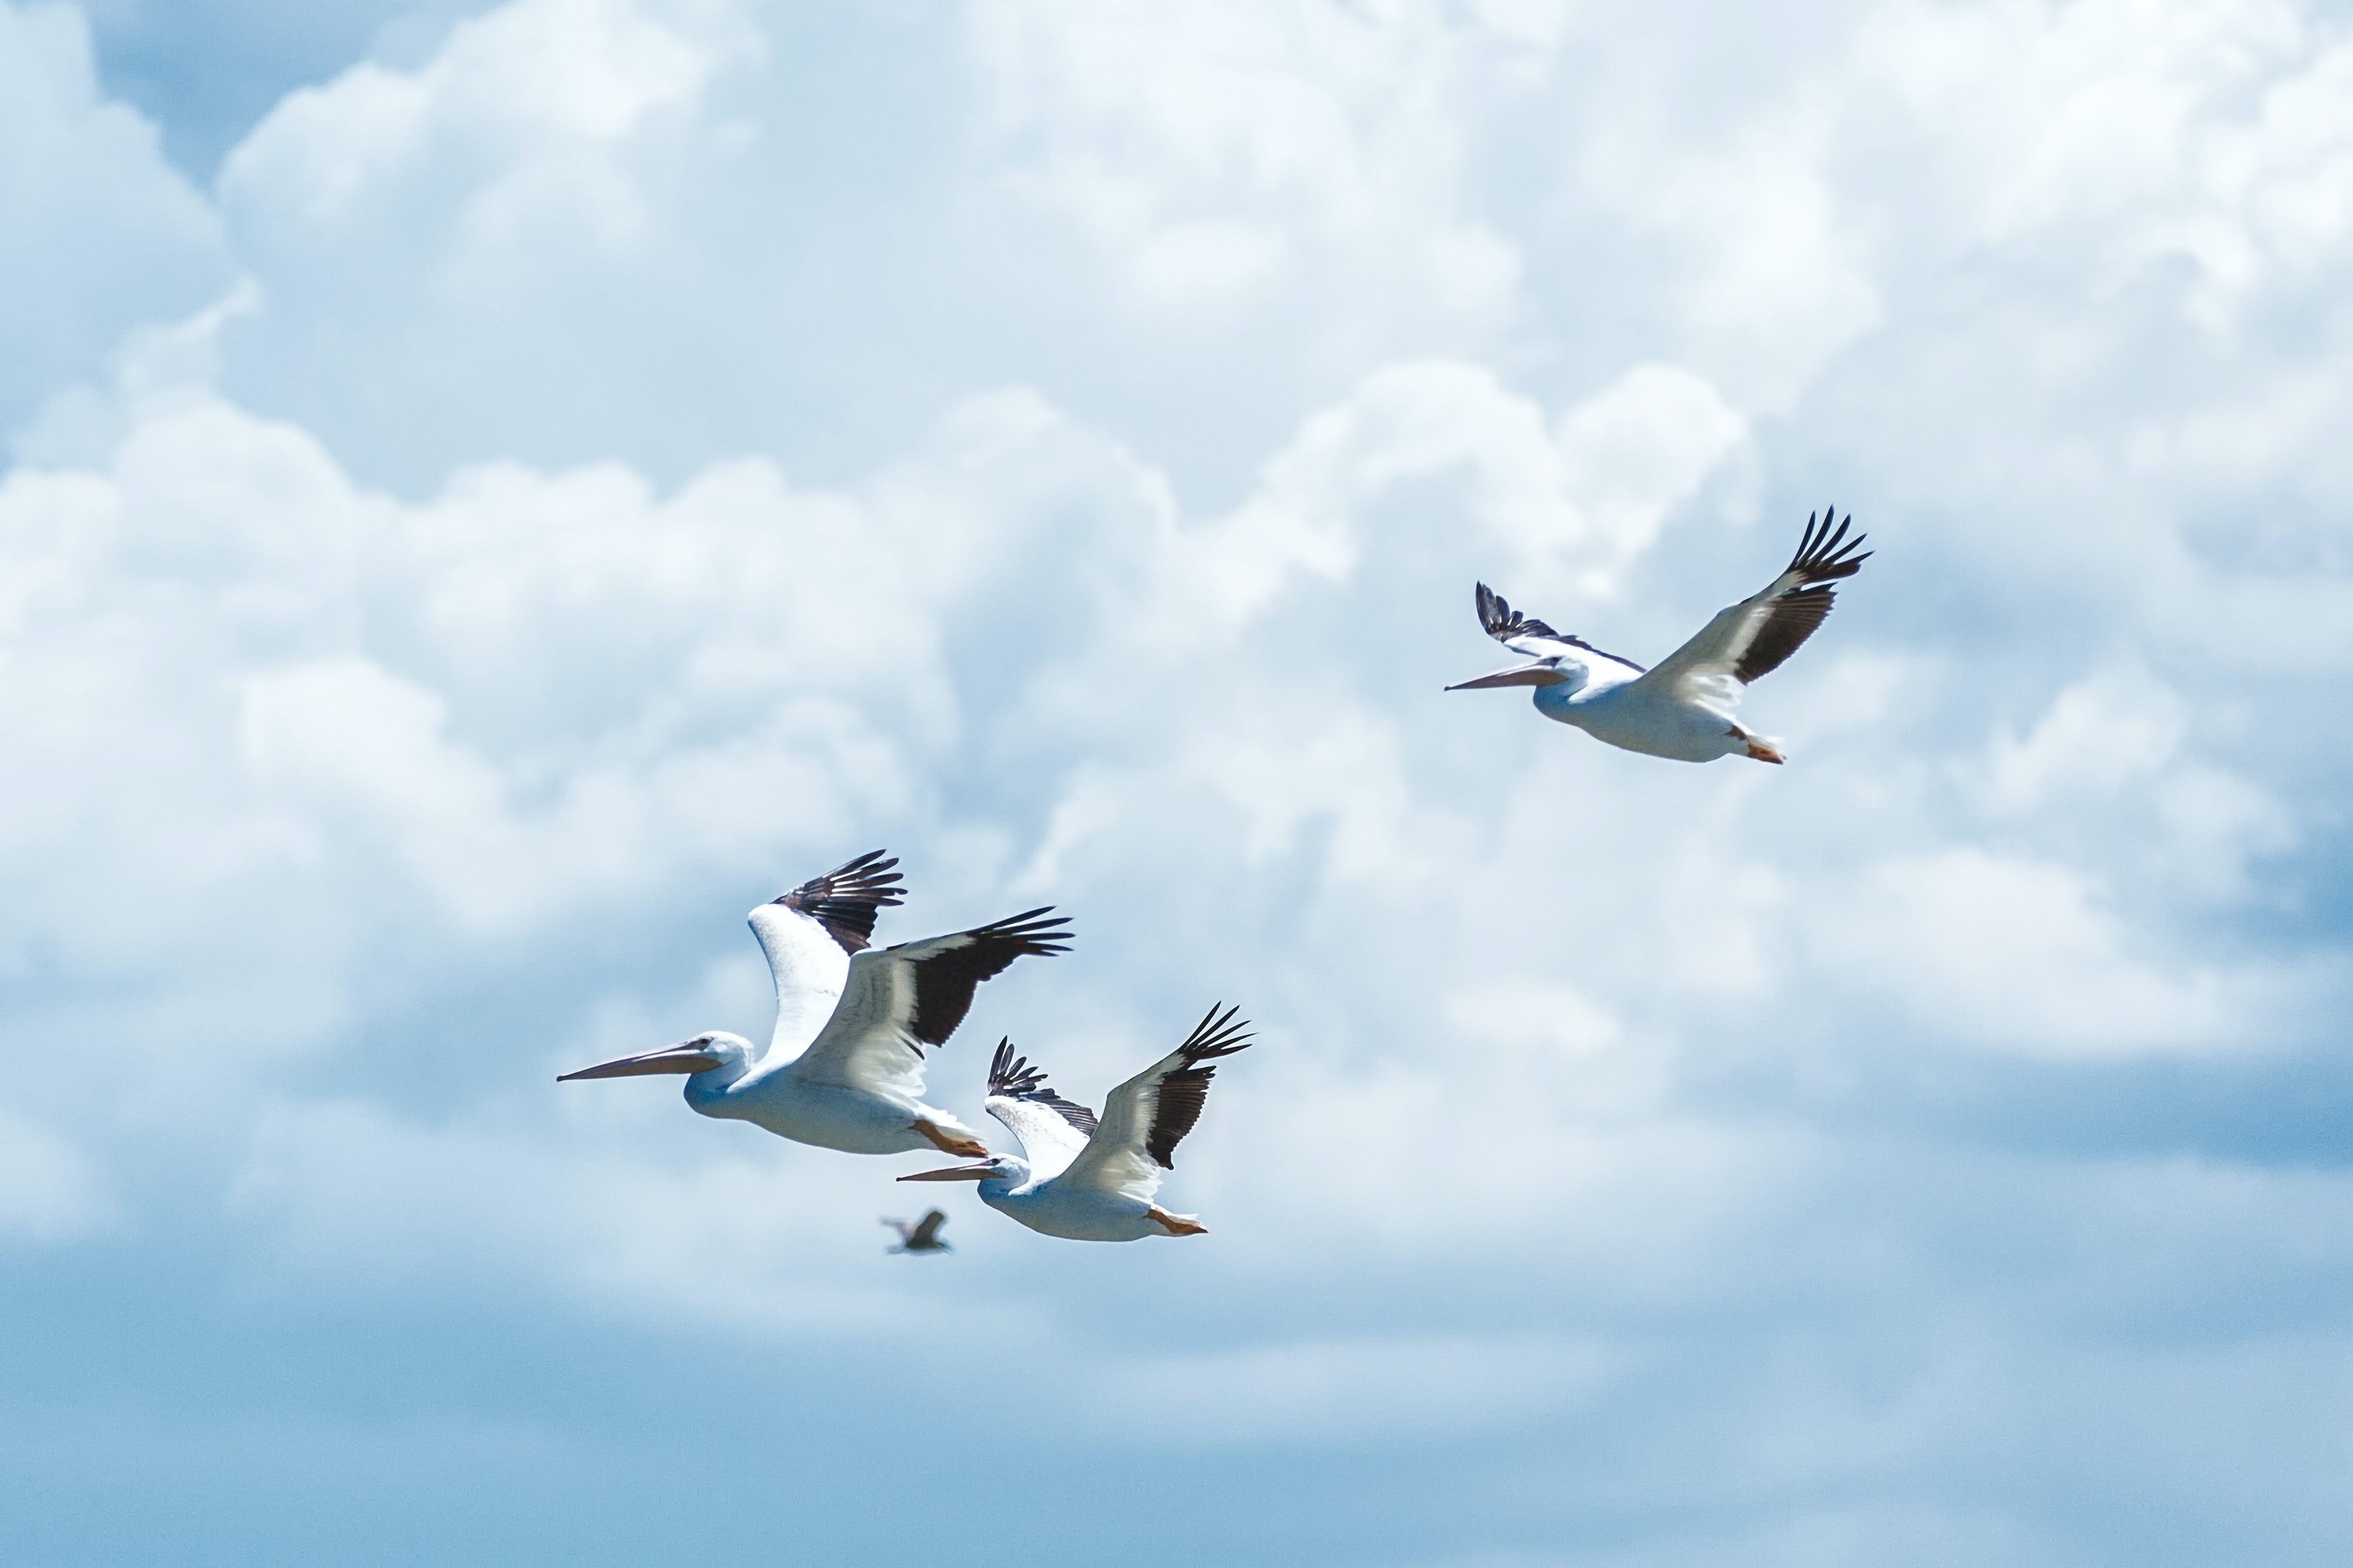 flying white birds under cloudy sky